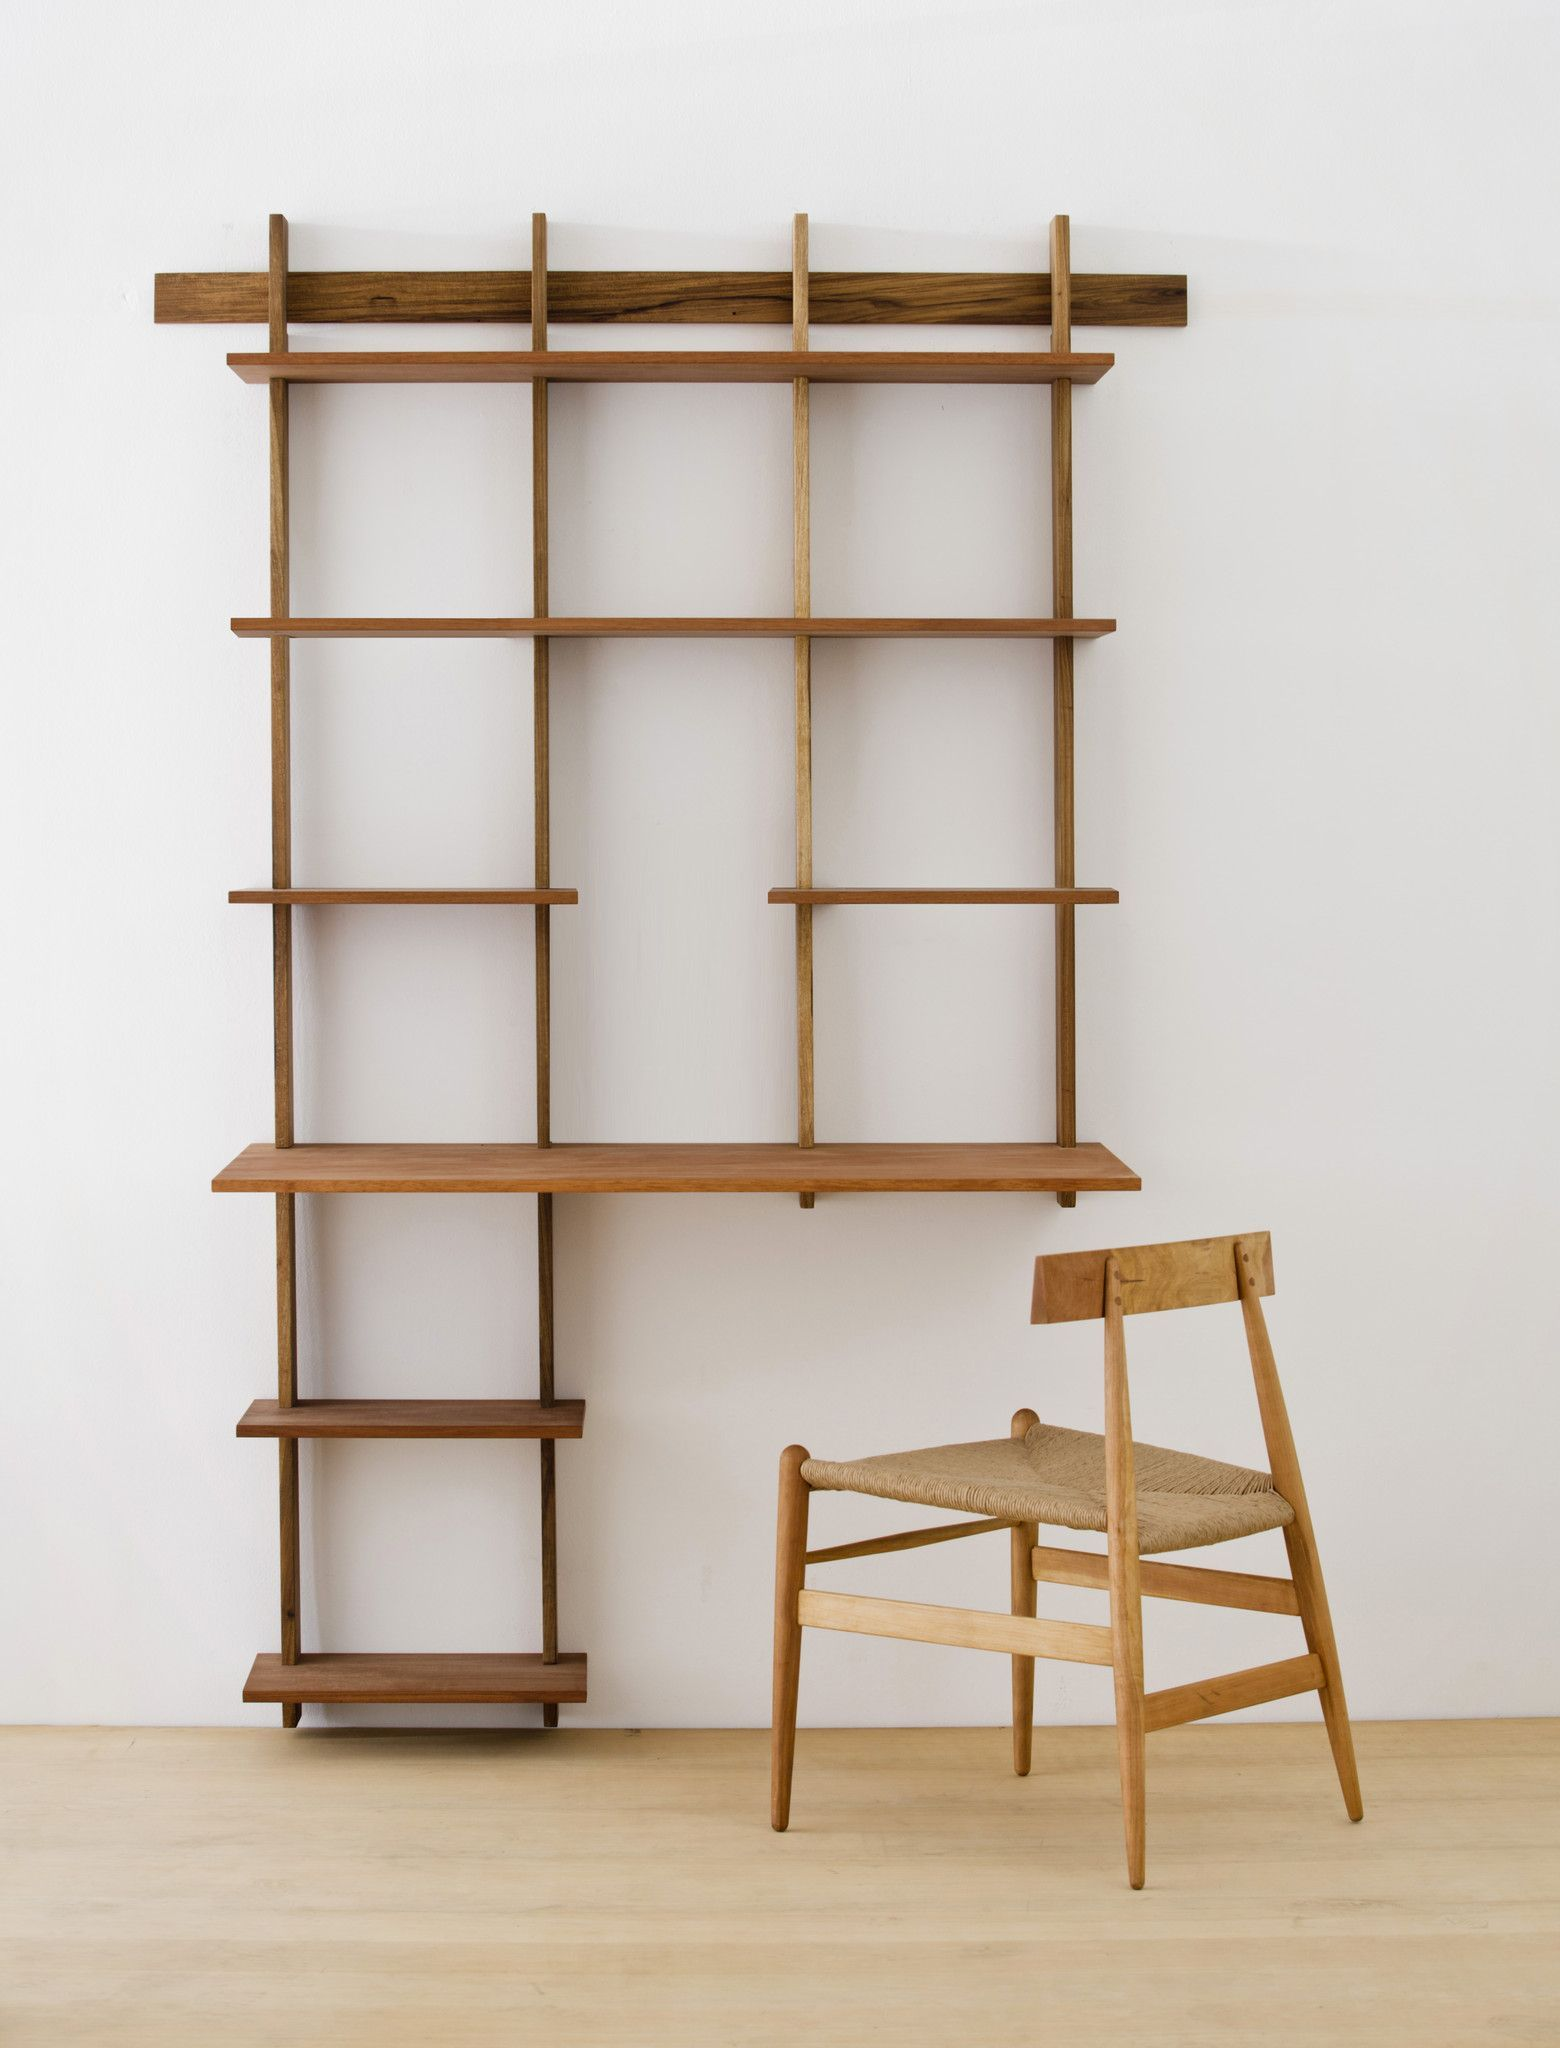 Kit g sticotti modular shelving system shelving systems and products